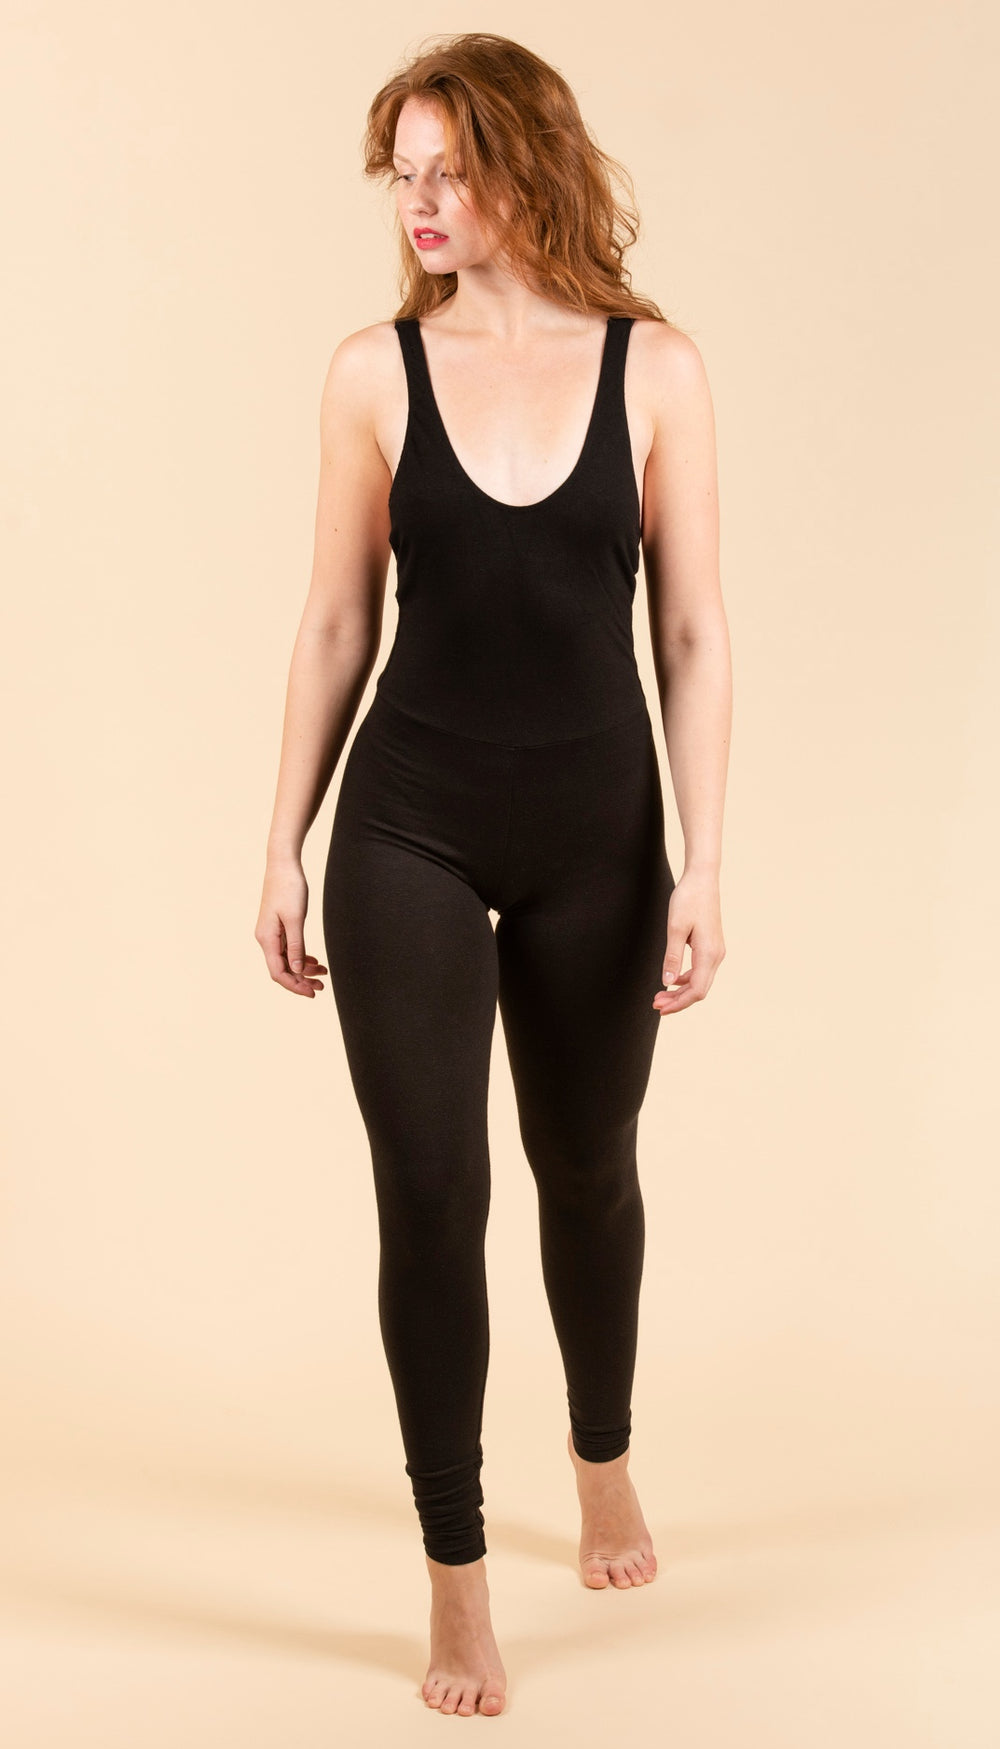 NATASHA TONIC Catsuit in Black